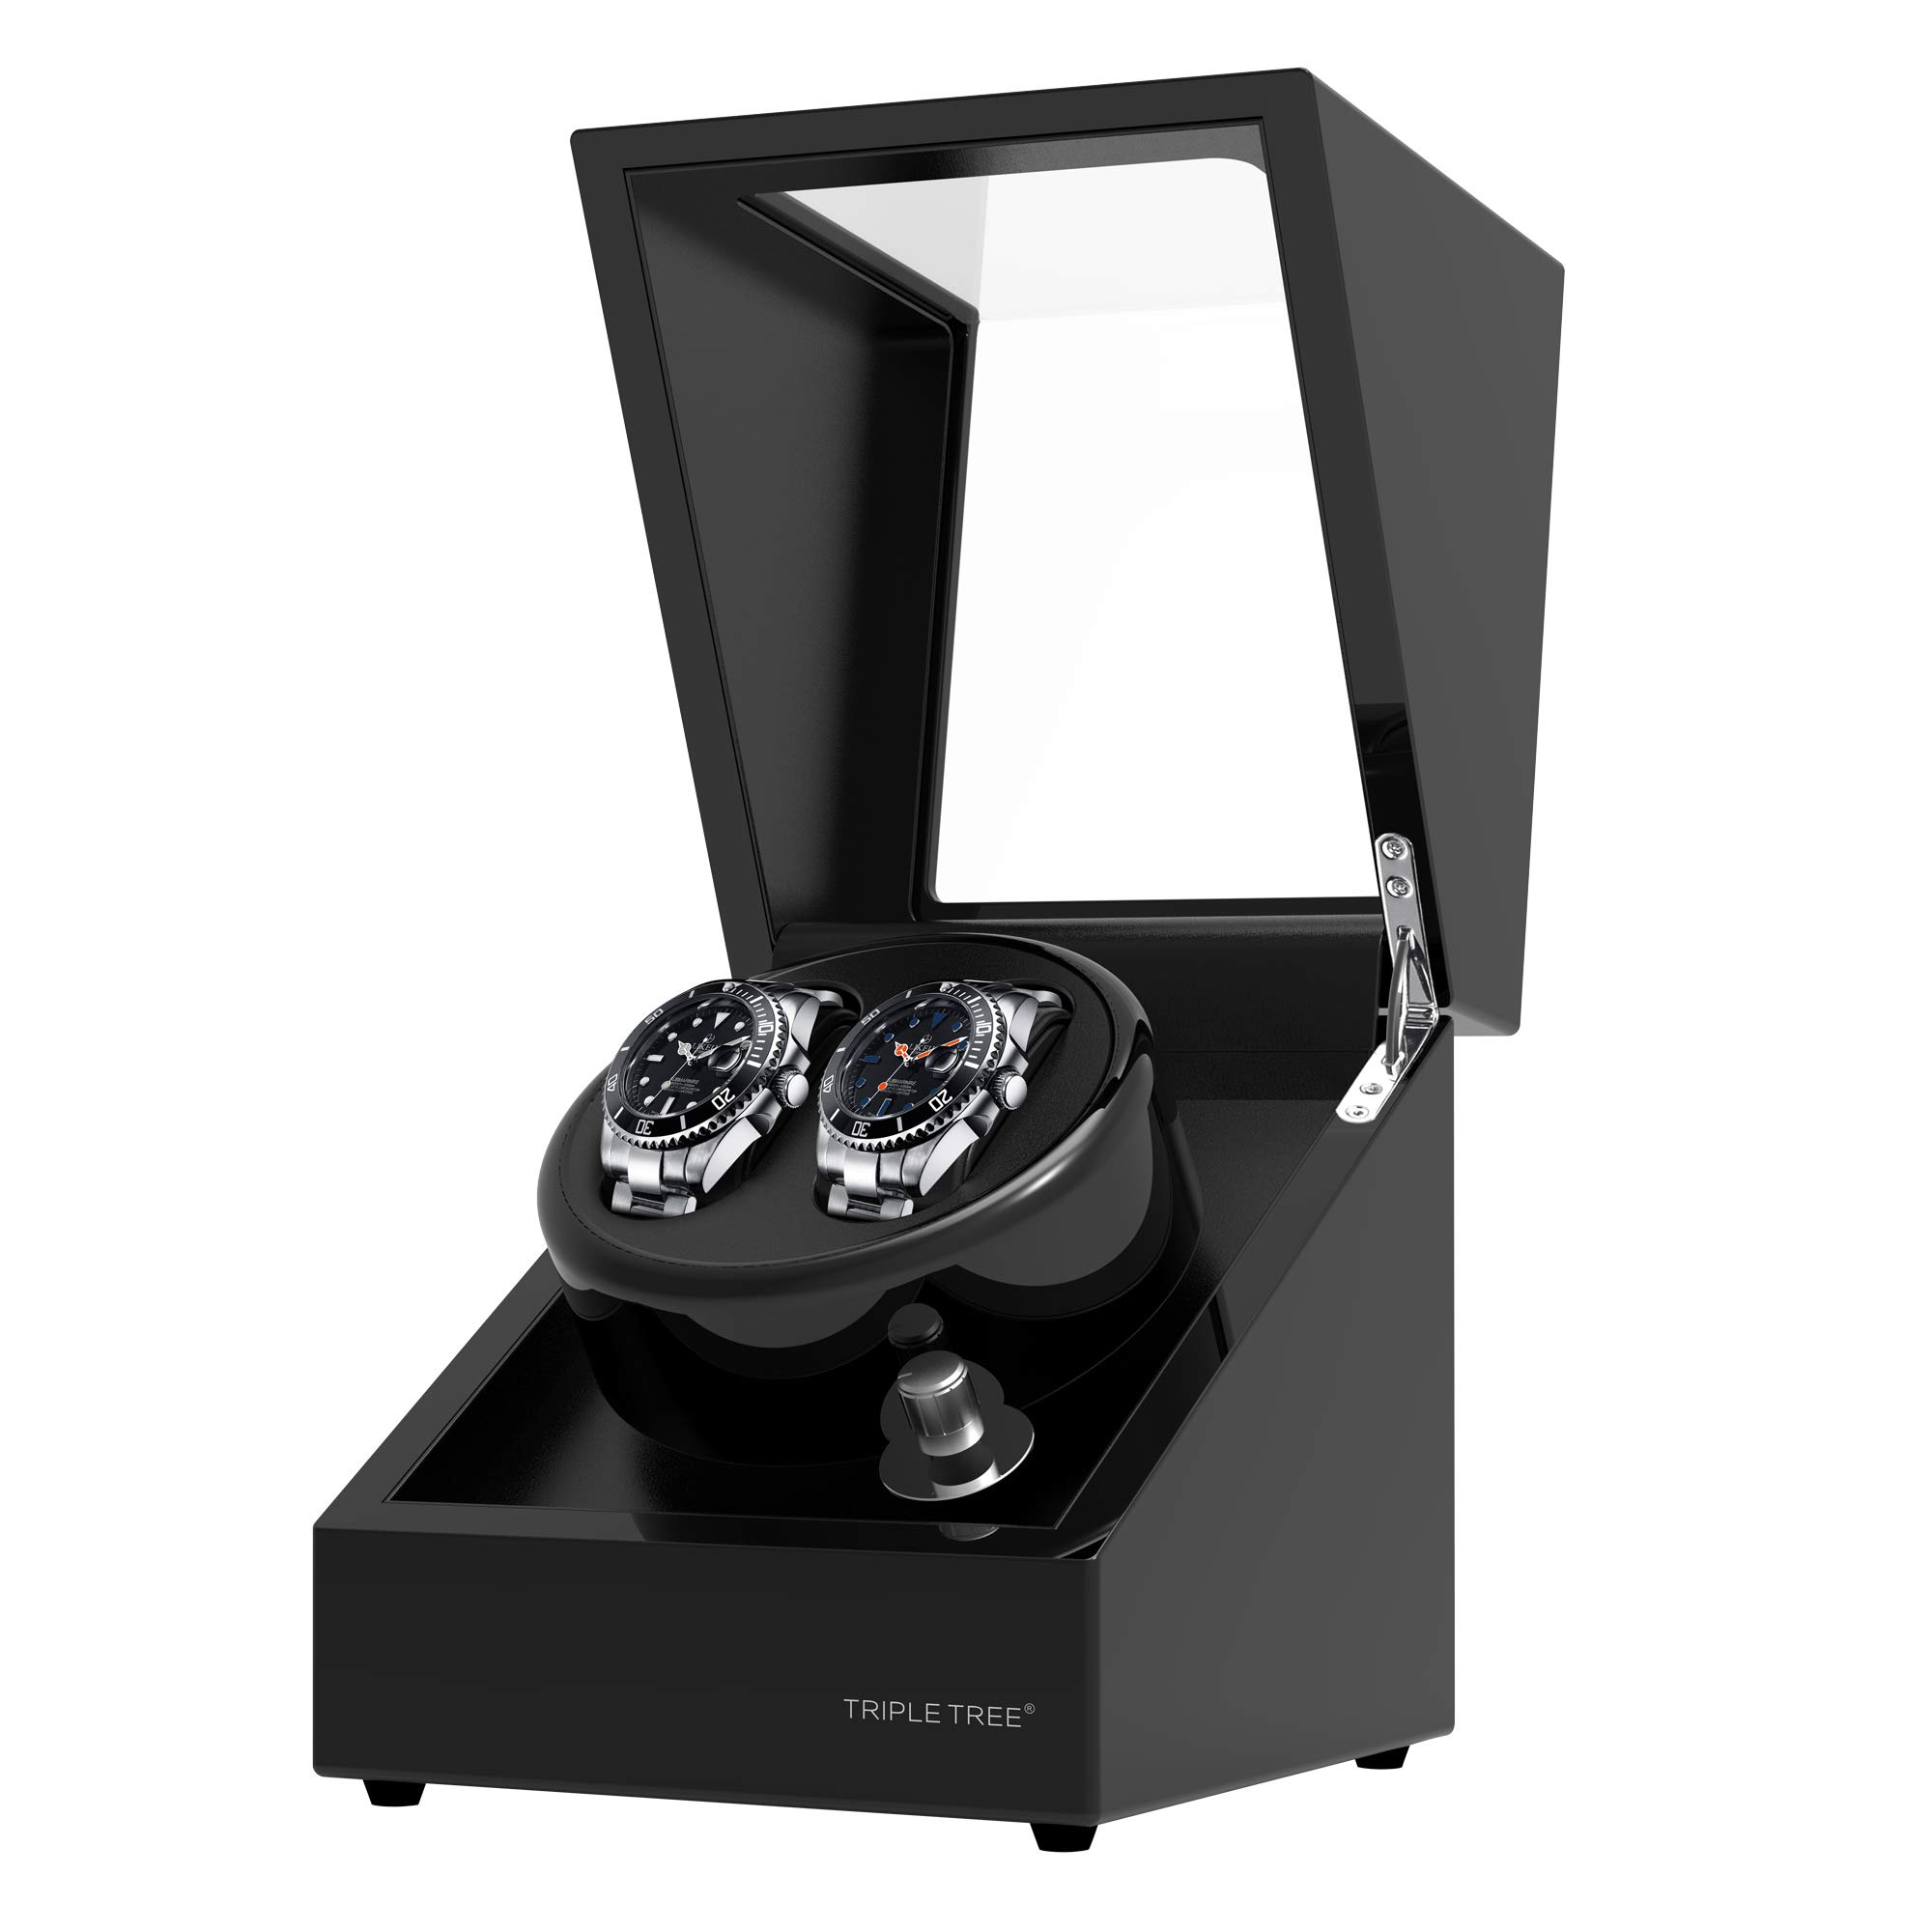 TRIPLE TREE Double Watch Winder [Newly Upgraded], for Automatic Watches, Wood Shell Piano Paint Exterior ,Extremely Silent Motor, Three Dimensional Watch Pillows, Suitable for Ladies and Men's Wrist